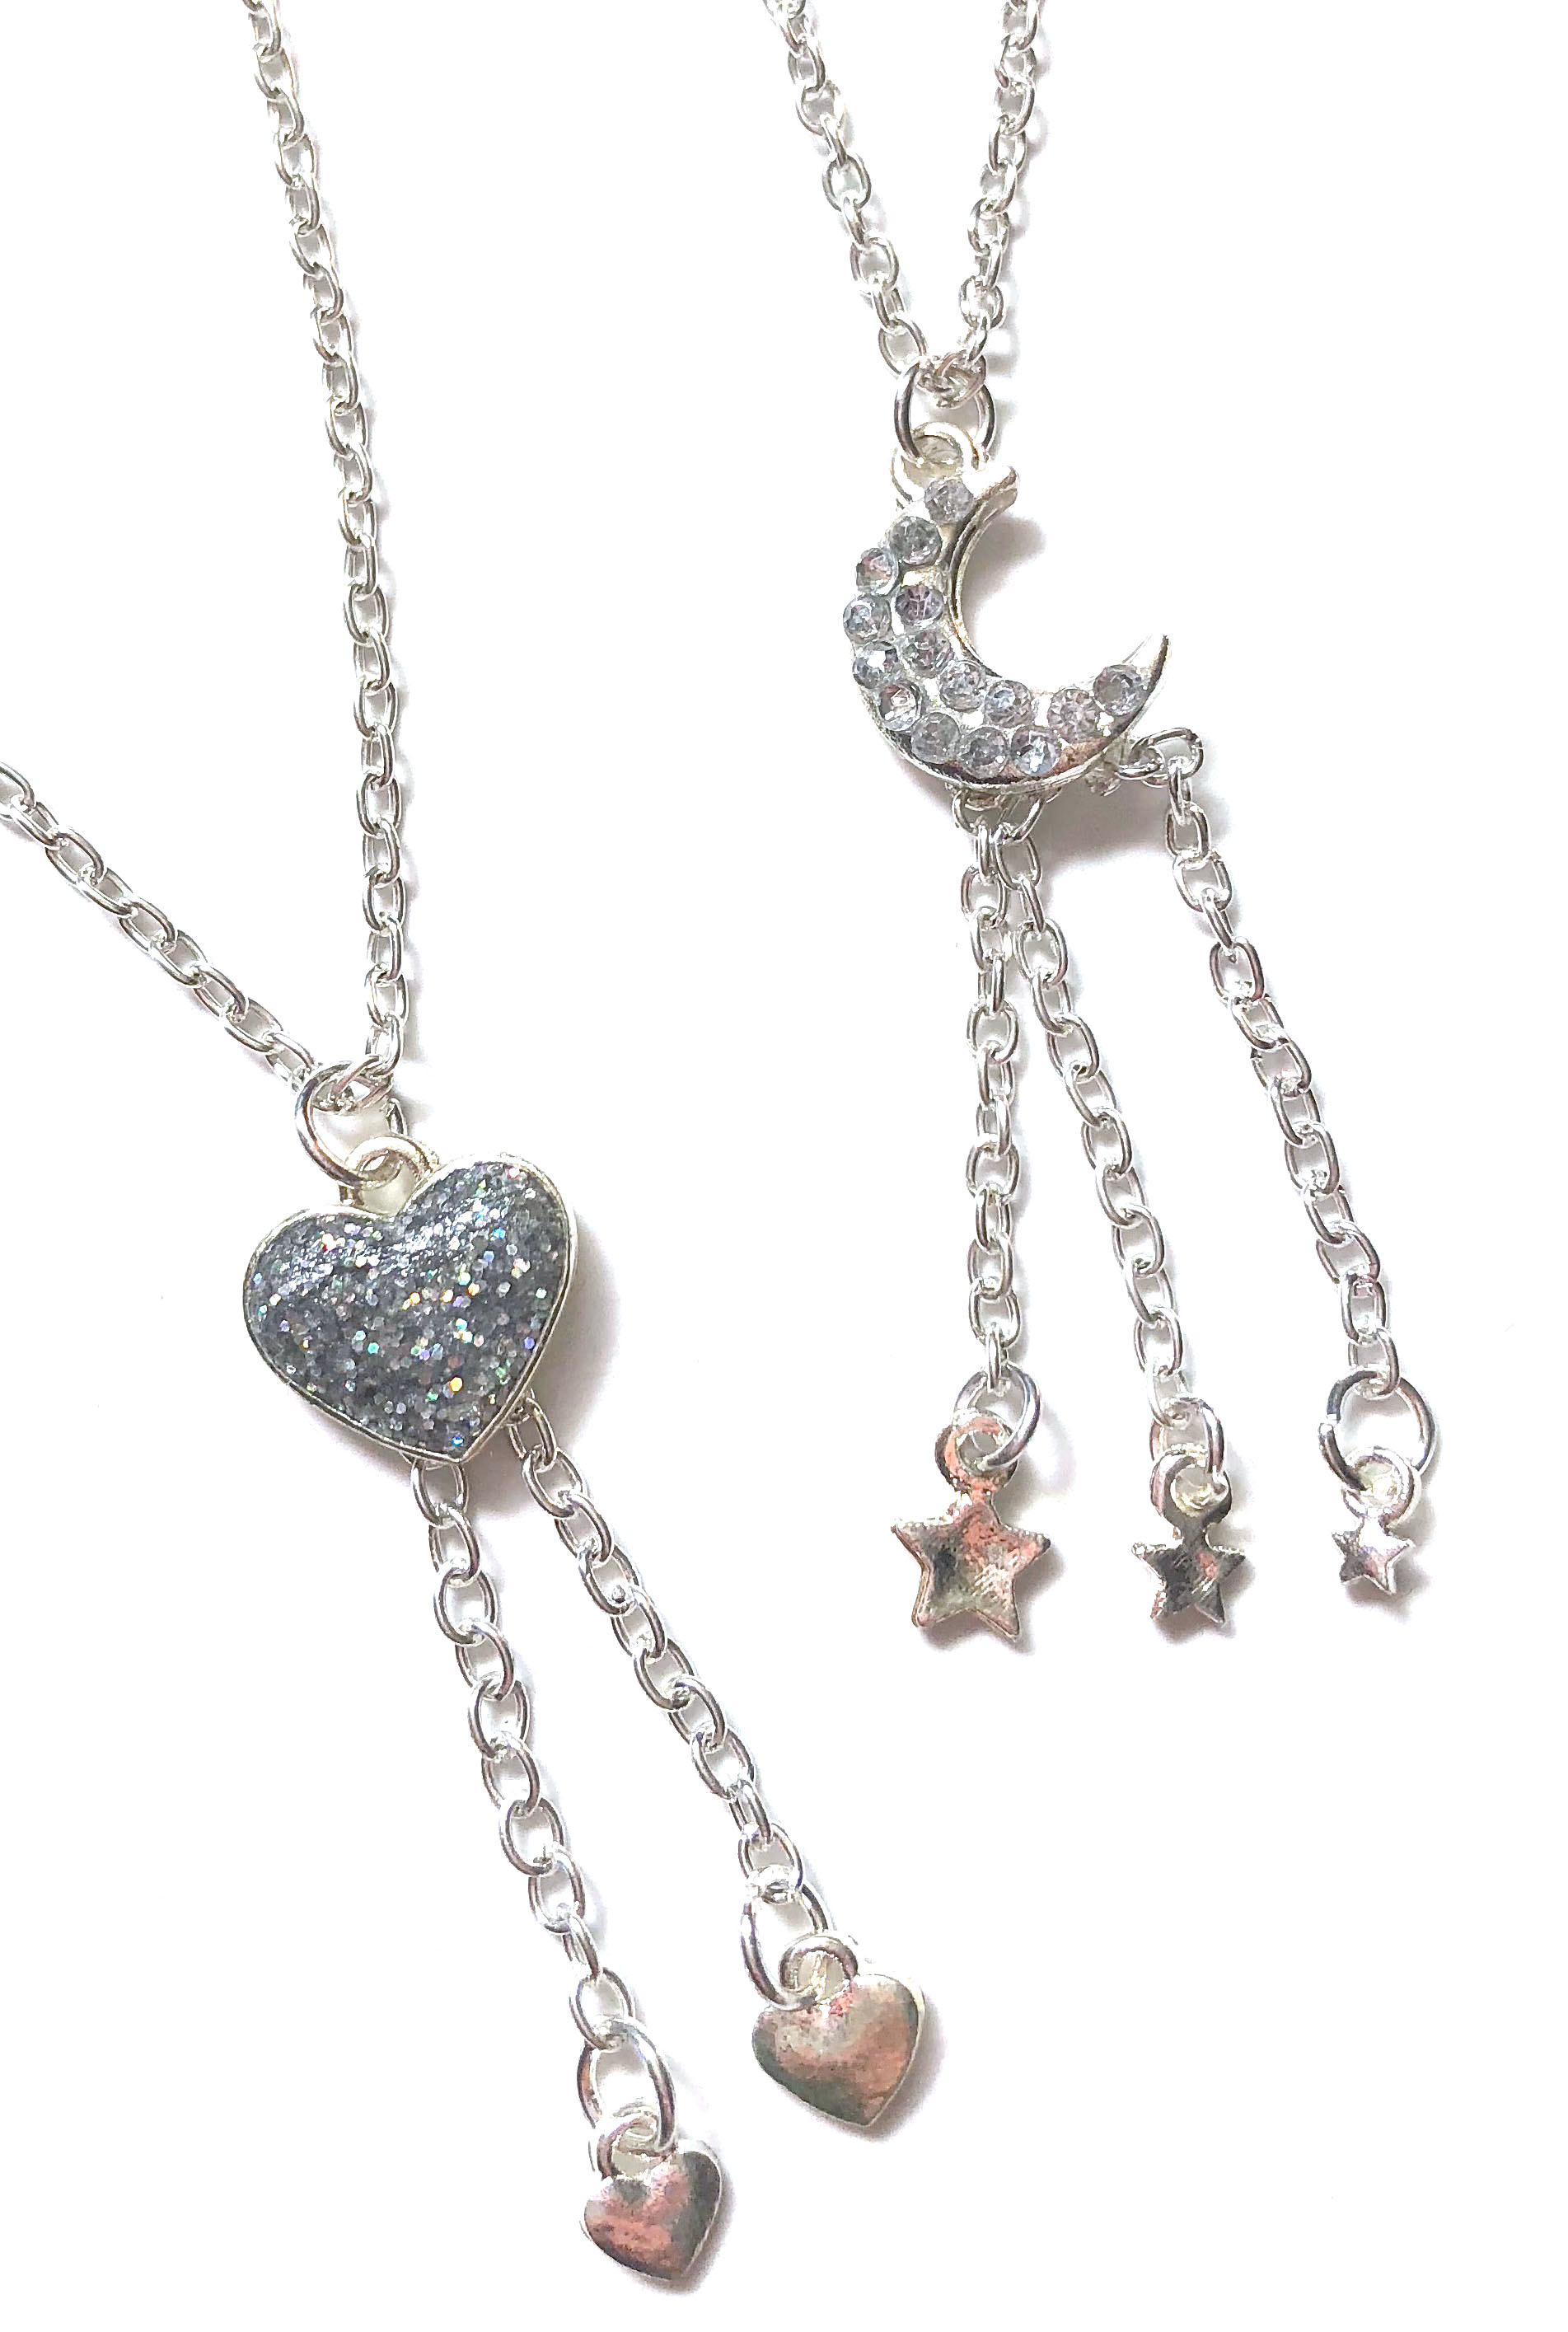 Star + Heart Necklaces